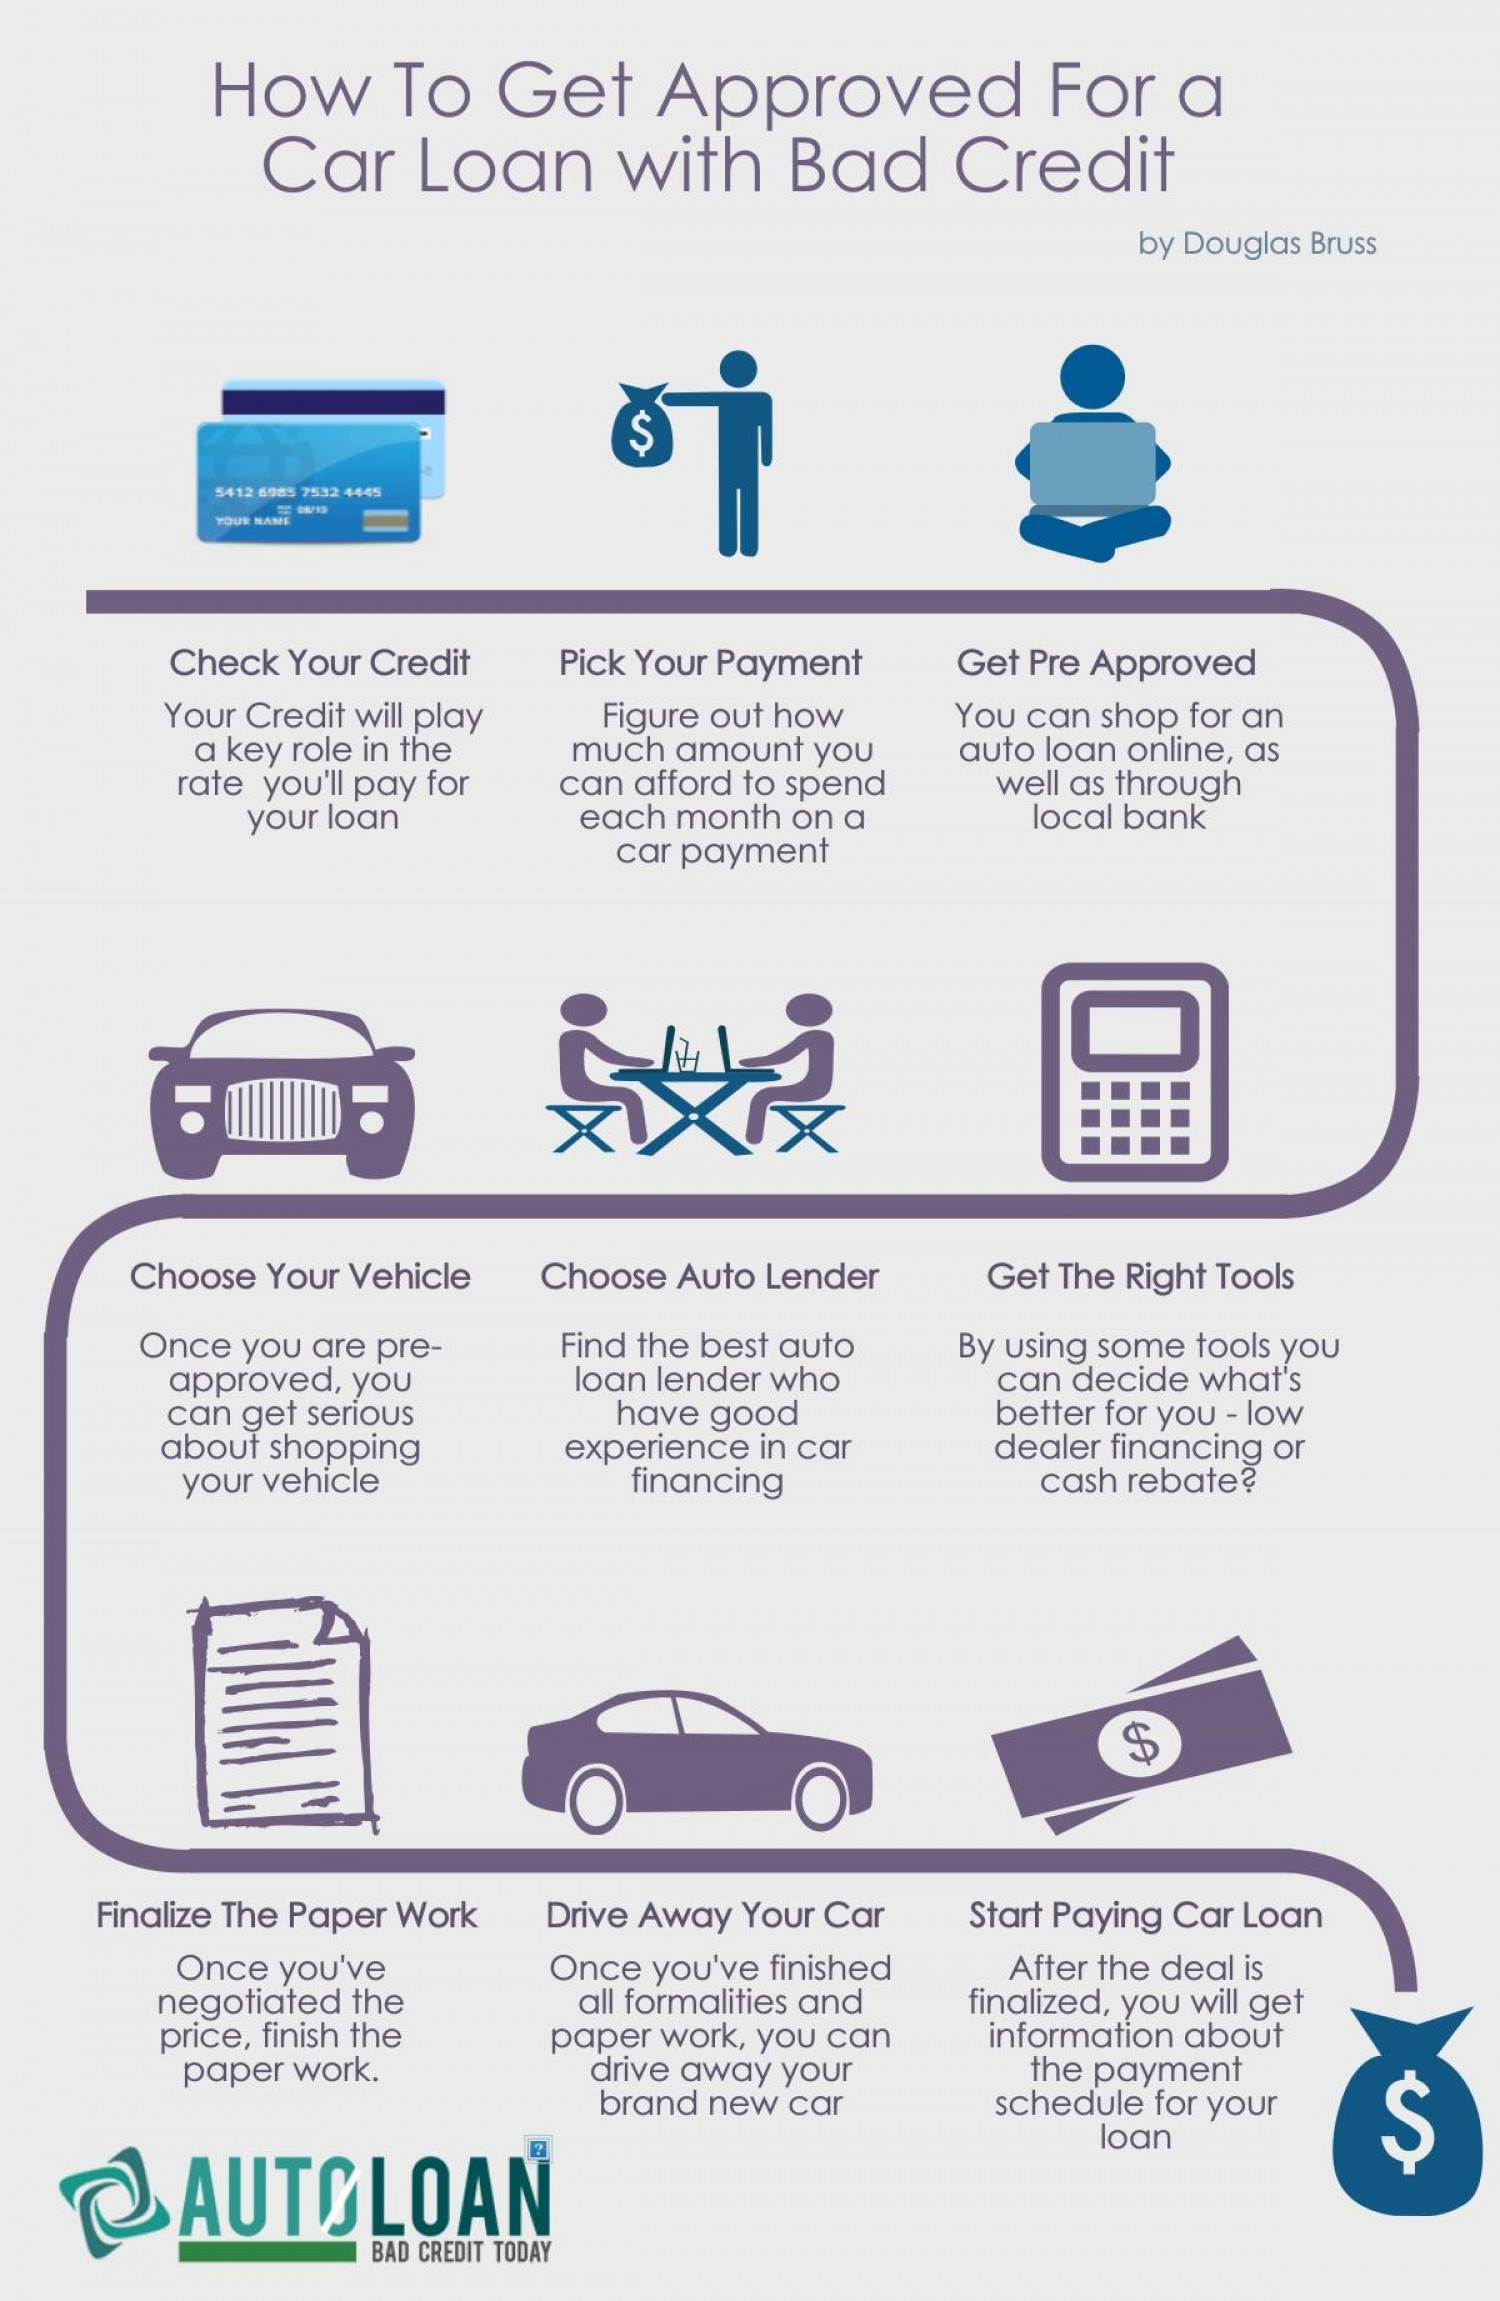 How To Get Approved For a Car Loan with Bad Credit | Visual.ly